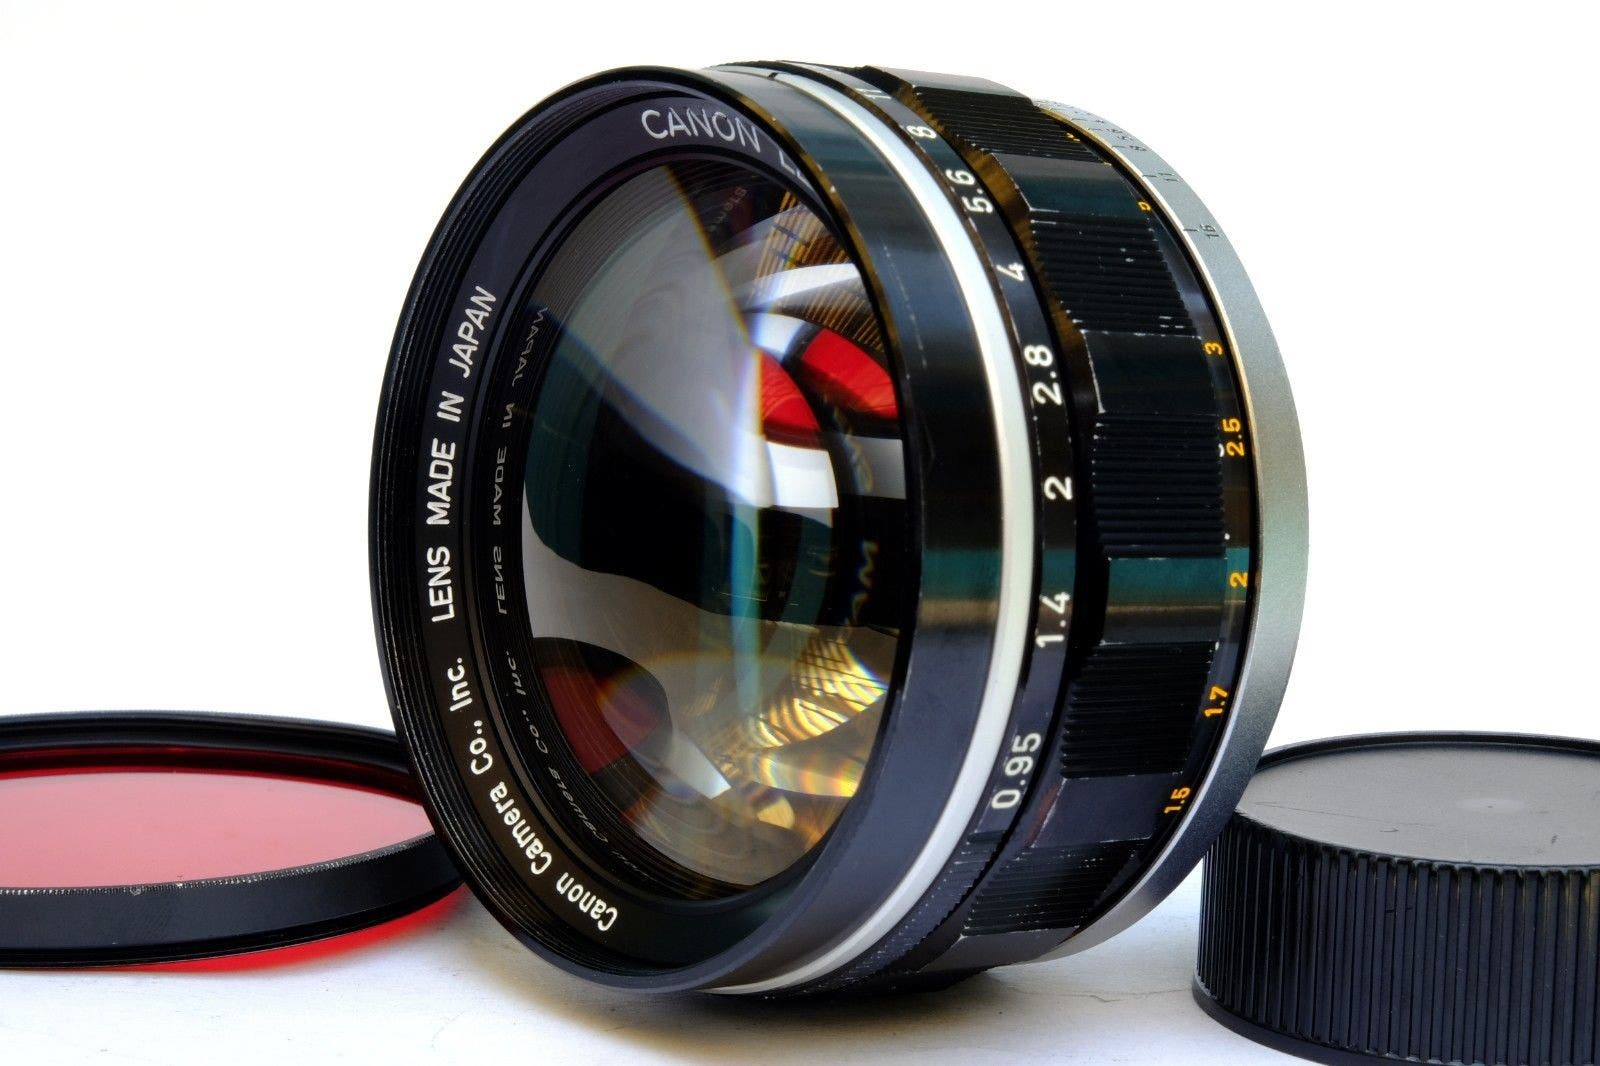 If You Buy This Canon 50mm f0.95 on eBay, Know That It's Stolen